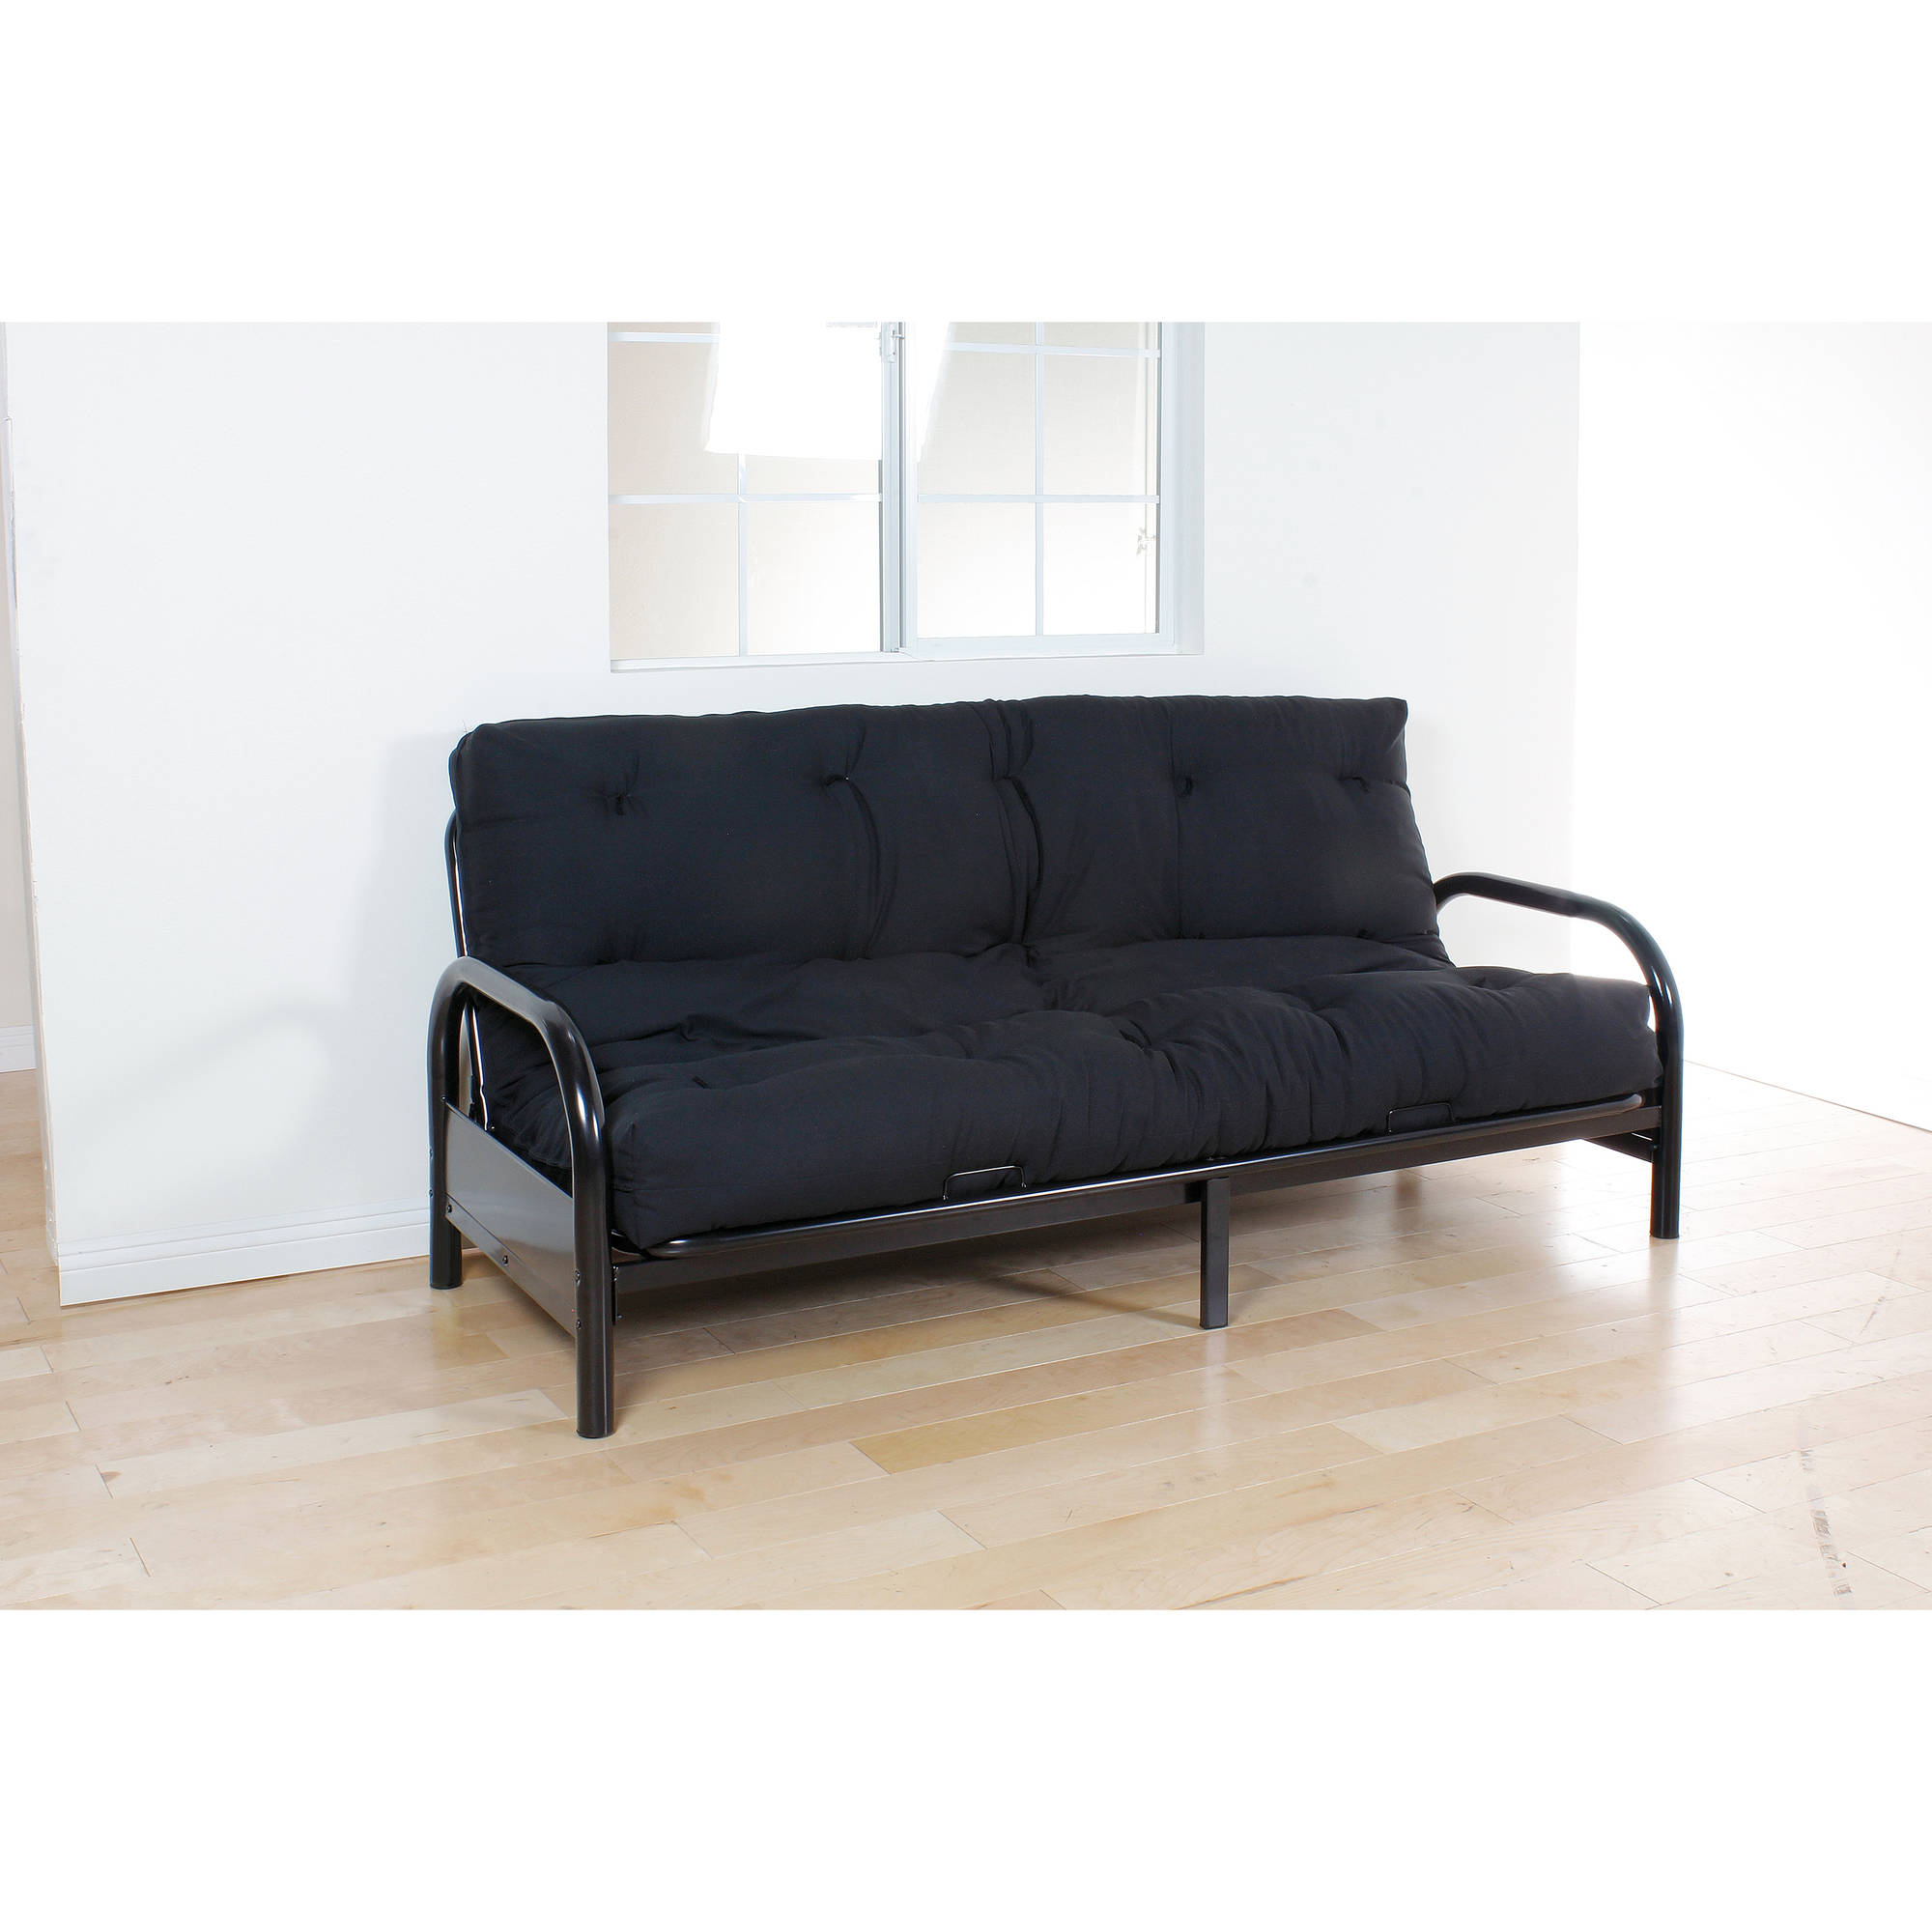 "Nabila 8"" Queen Futon Mattress, Black"